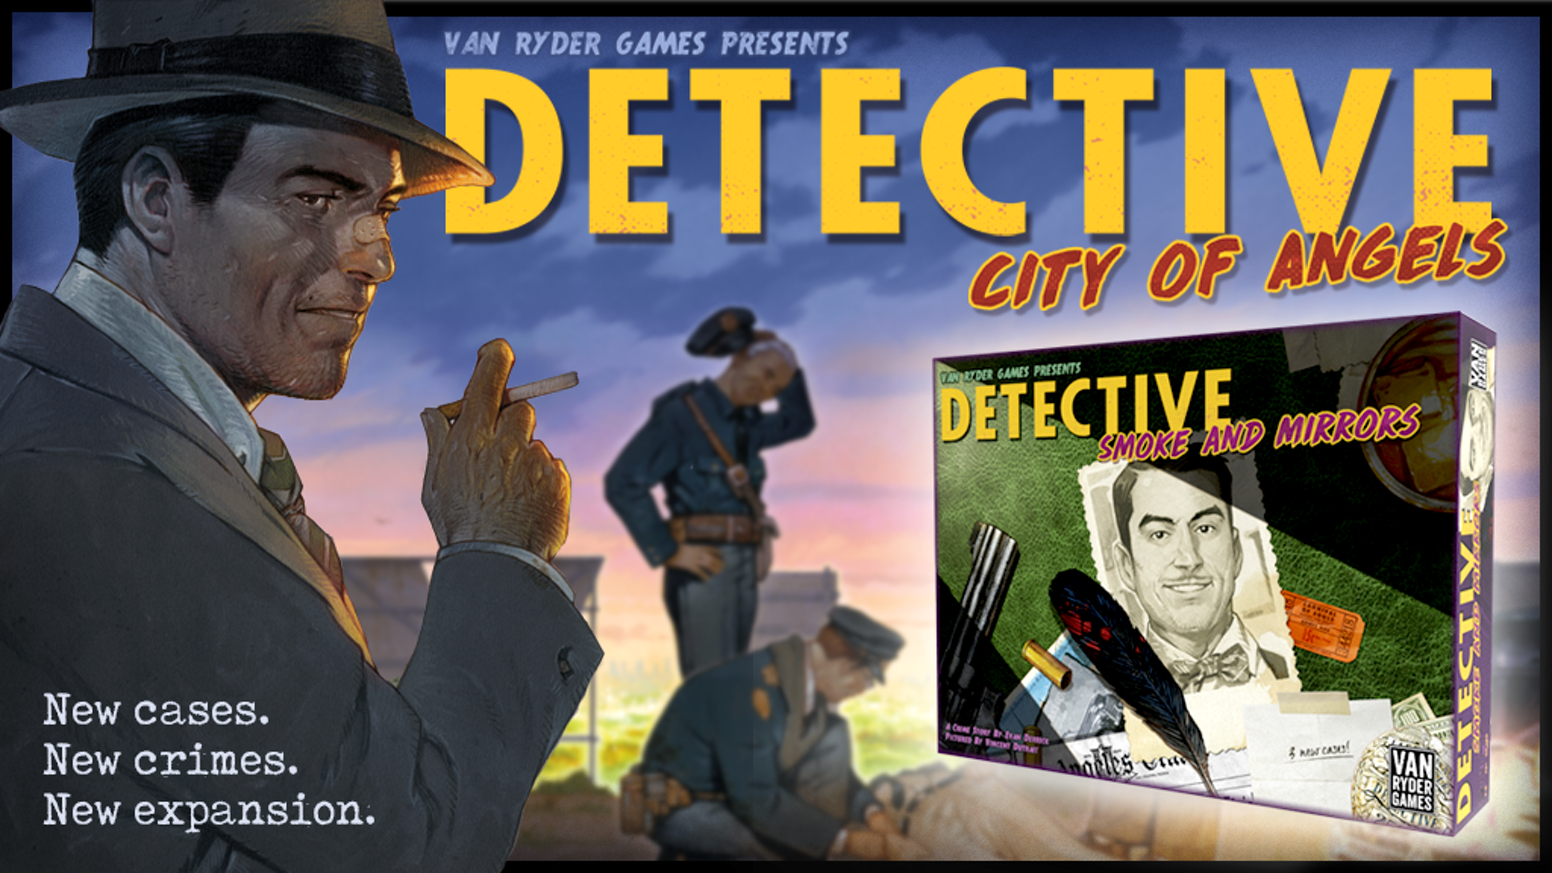 A new expansion for Detective: City of Angels. Plus, get Detective: City of Angels and Bullets Over Hollywood!